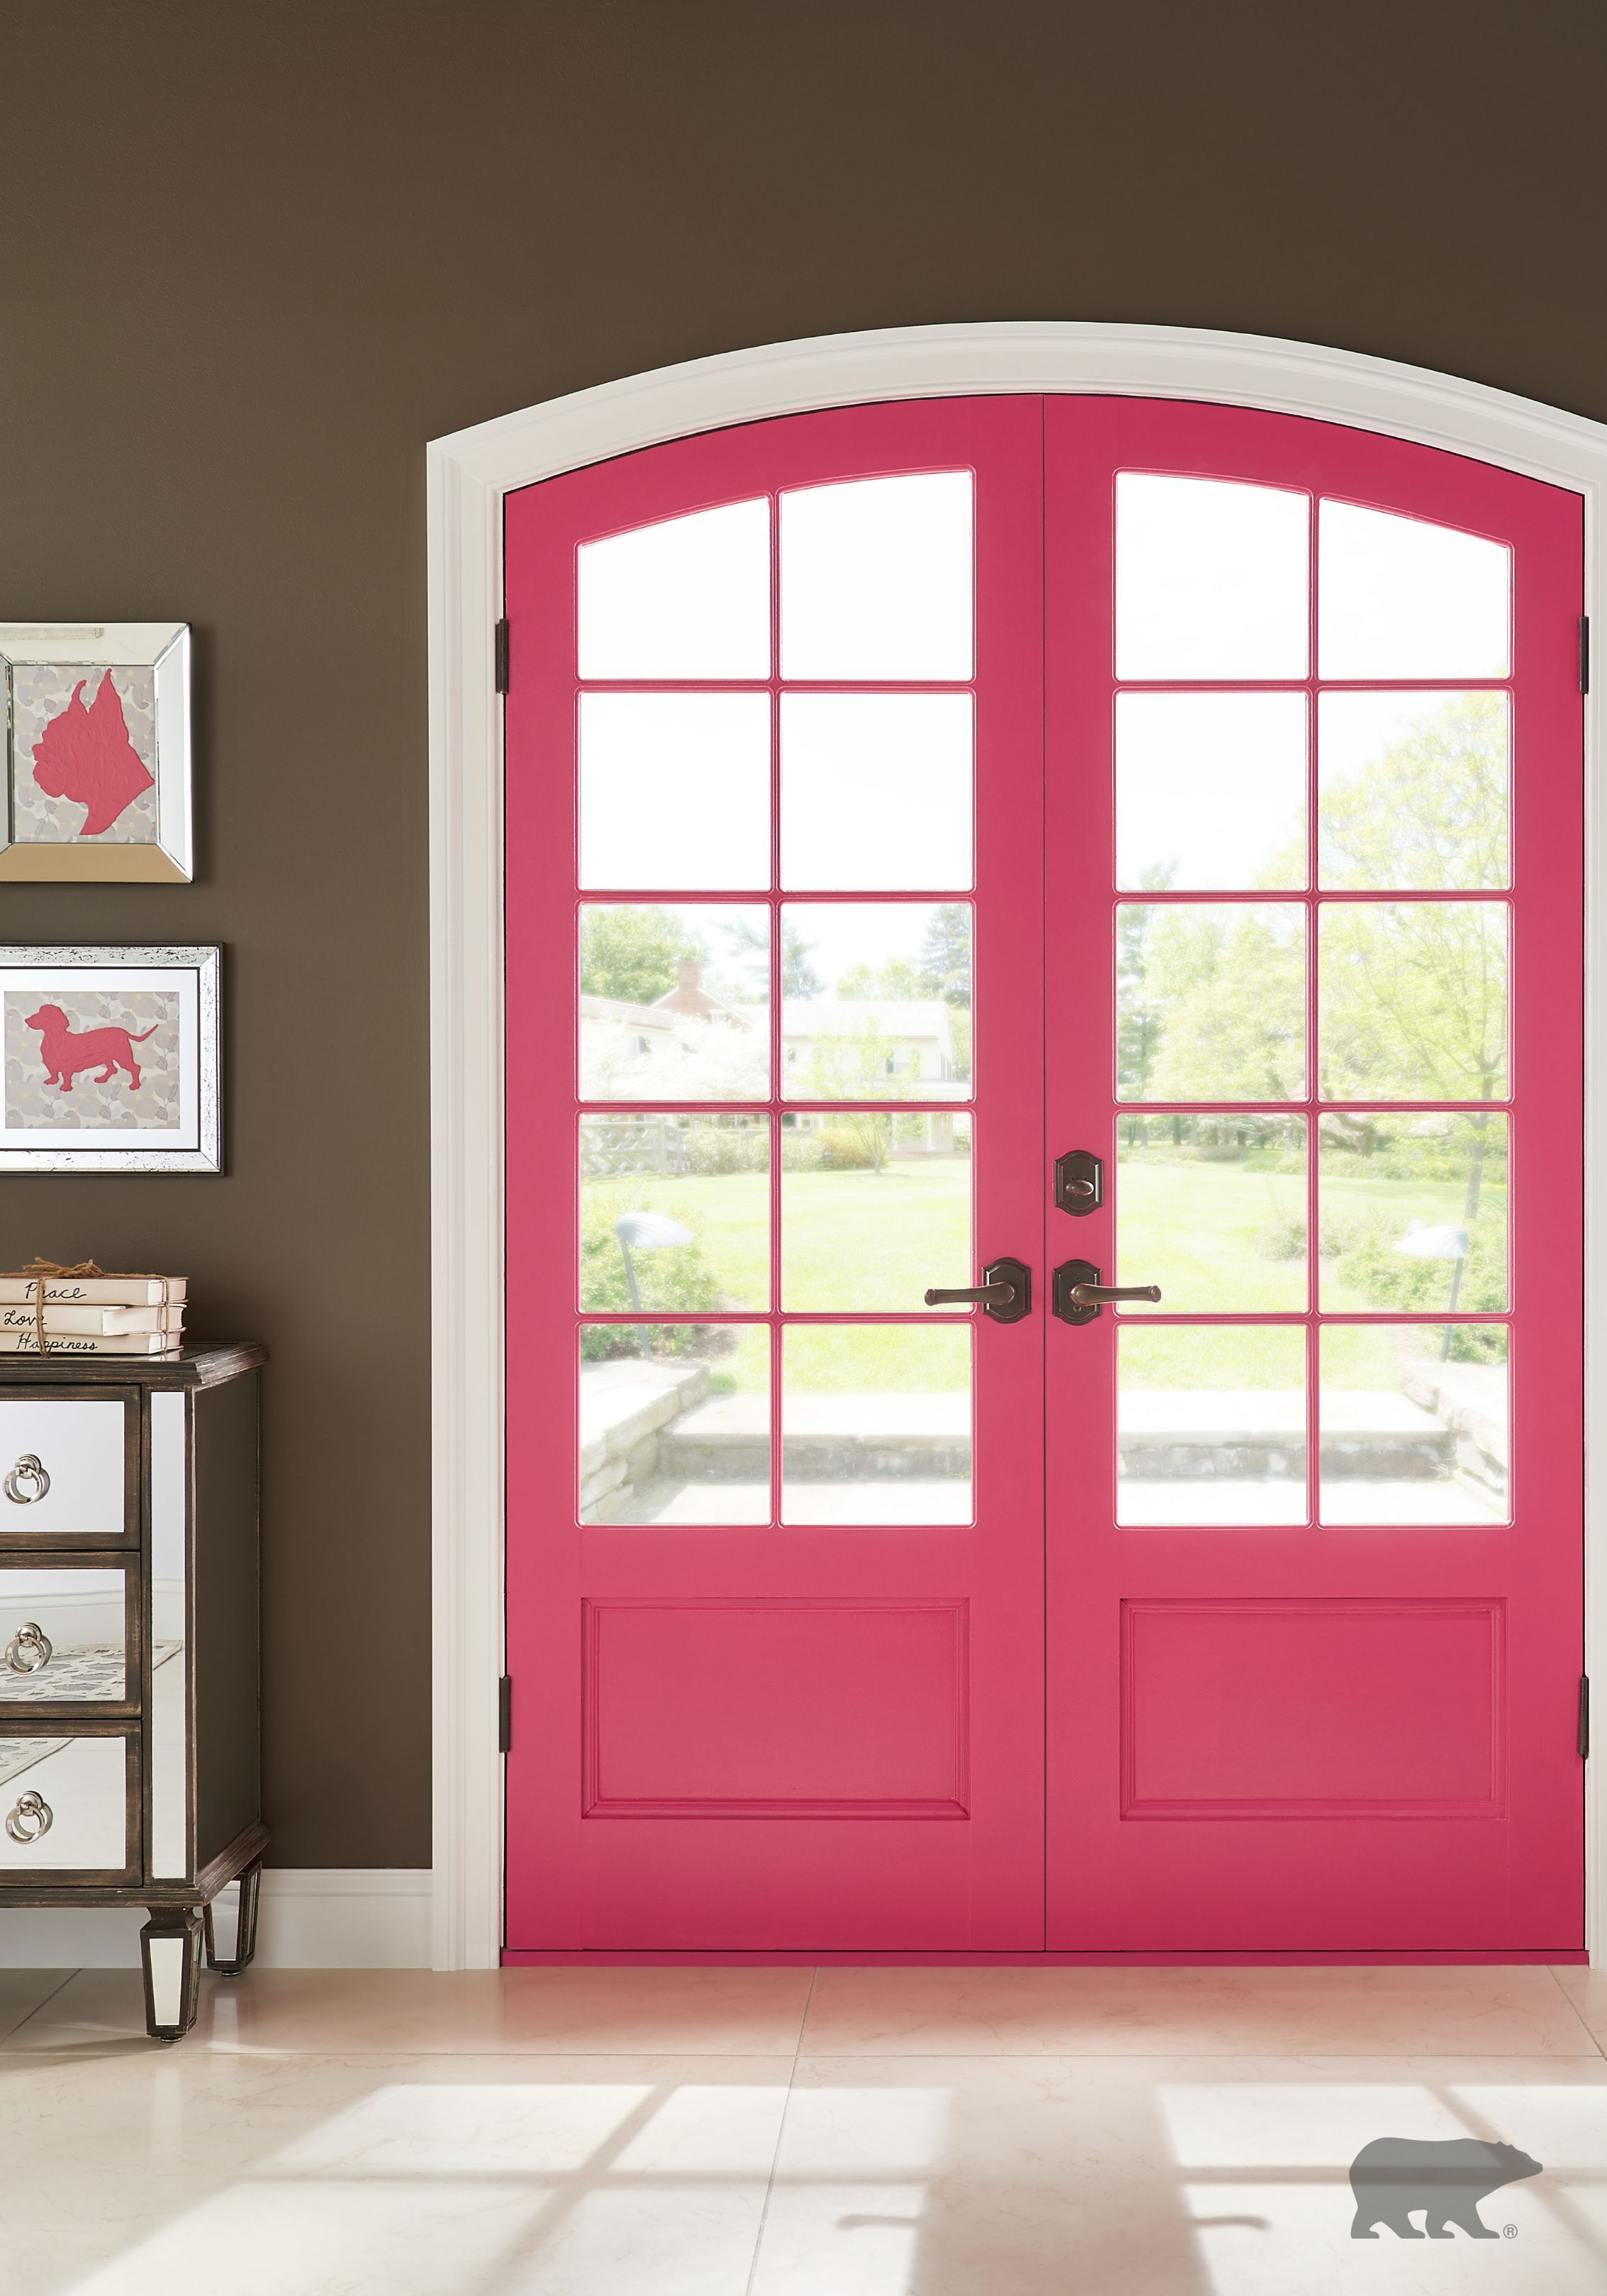 Update your entryway with a bold color from BEHR paint to give your ...